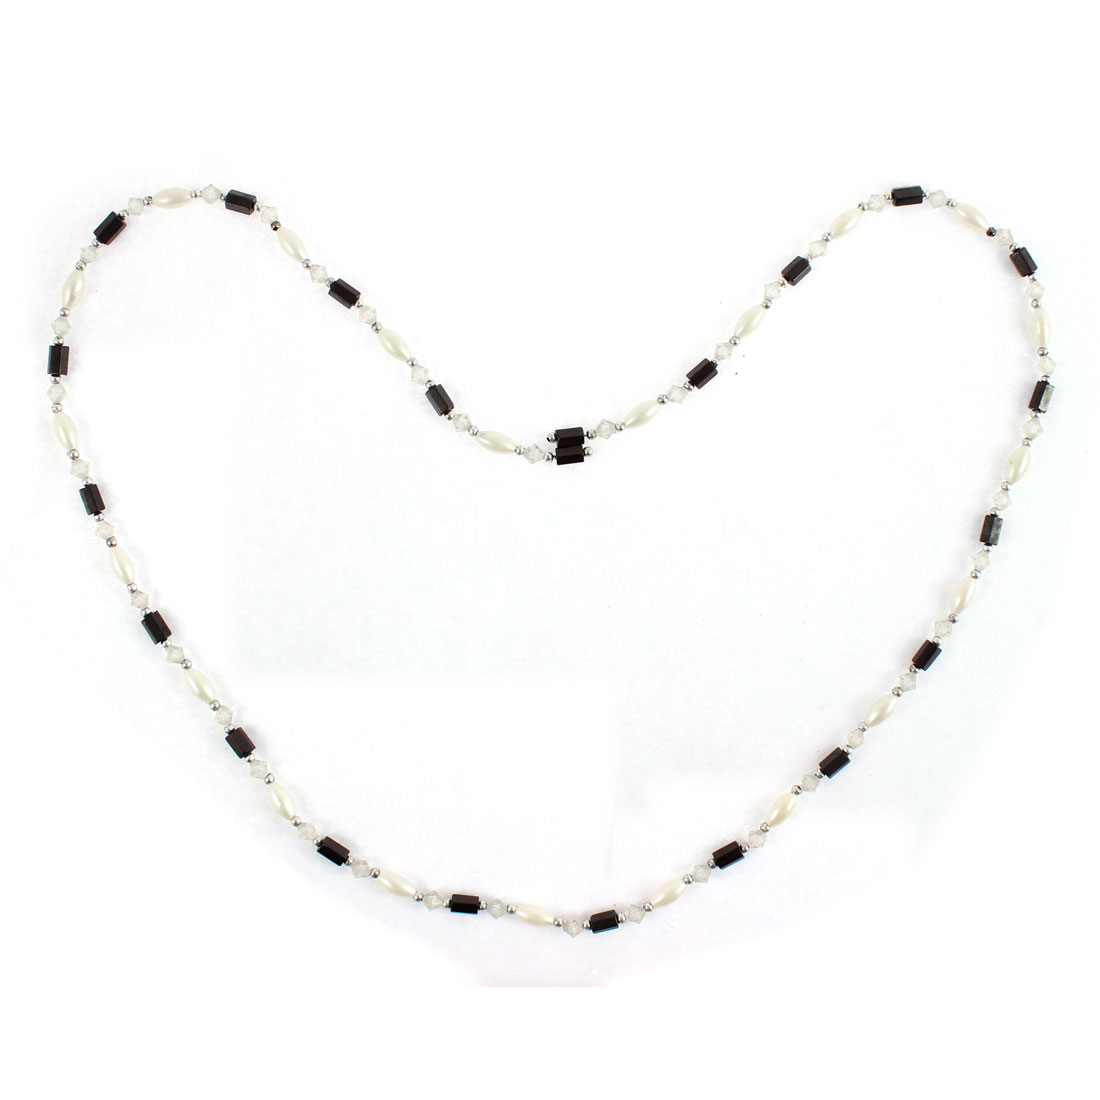 Women Hematite Beads Magnetic Clasp Bracelet Choker Necklace Chain White